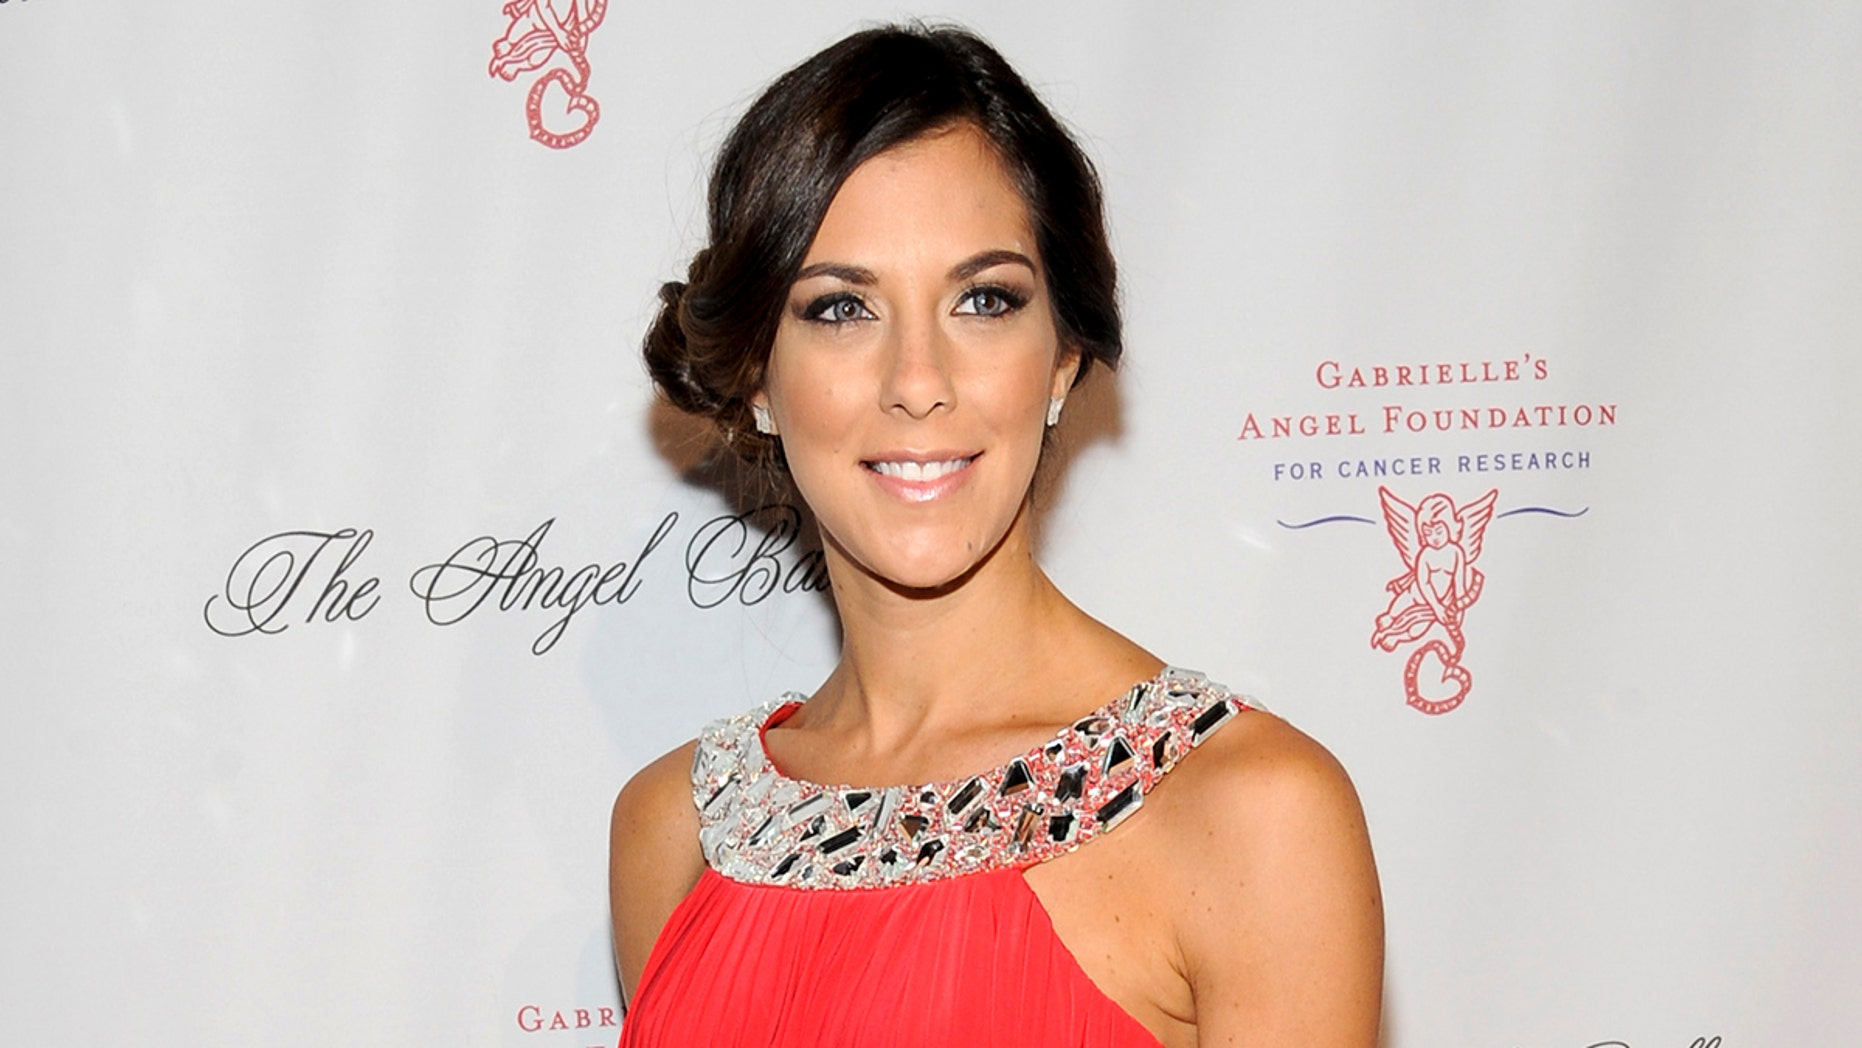 """FILE - In this Oct. 17, 2011 file photo, reality TV personality Jenna Morasca attends the Gabrielle's Angel Foundation for Cancer Research Angel Ball honors gala in New York. Police say Morasca, a winner of the reality TV show """"Survivor,"""" bit a police officer after being found unconscious in her parked car and revived with the opioid overdose antidote Narcan. A police report obtained by the Observer-Reporter newspaper says the 37-year-old became combative during the Jan. 25 incident near a McDonalds restaurant 30 miles south of Pittsburgh. (AP Photo/Evan Agostini, File)"""